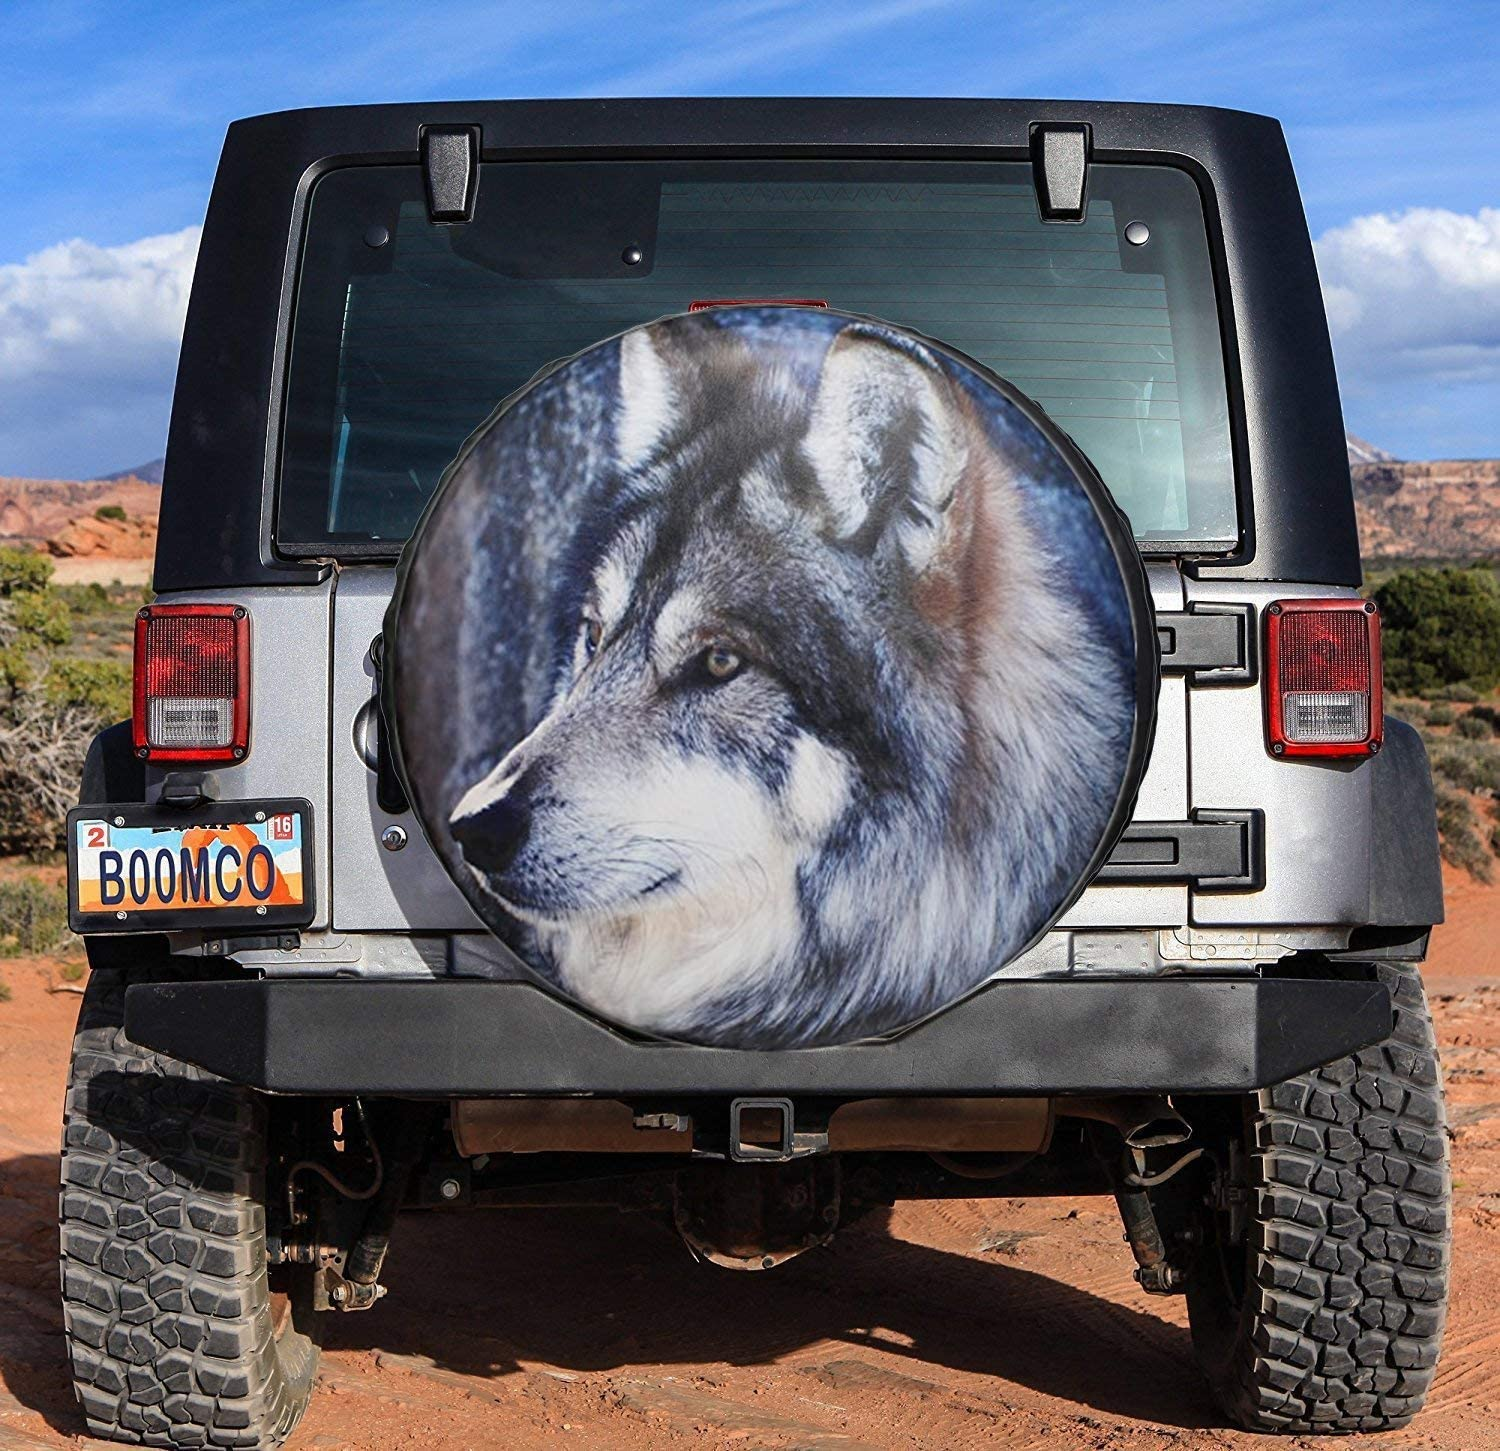 SUV sofu Spare Tire Cover RV 15 for Diameter 27-29 Camper and Vehicle Wheel Cover with Wolf PVC Leather Waterproof Dust-Proof Universal Fit for Jeep,Trailer